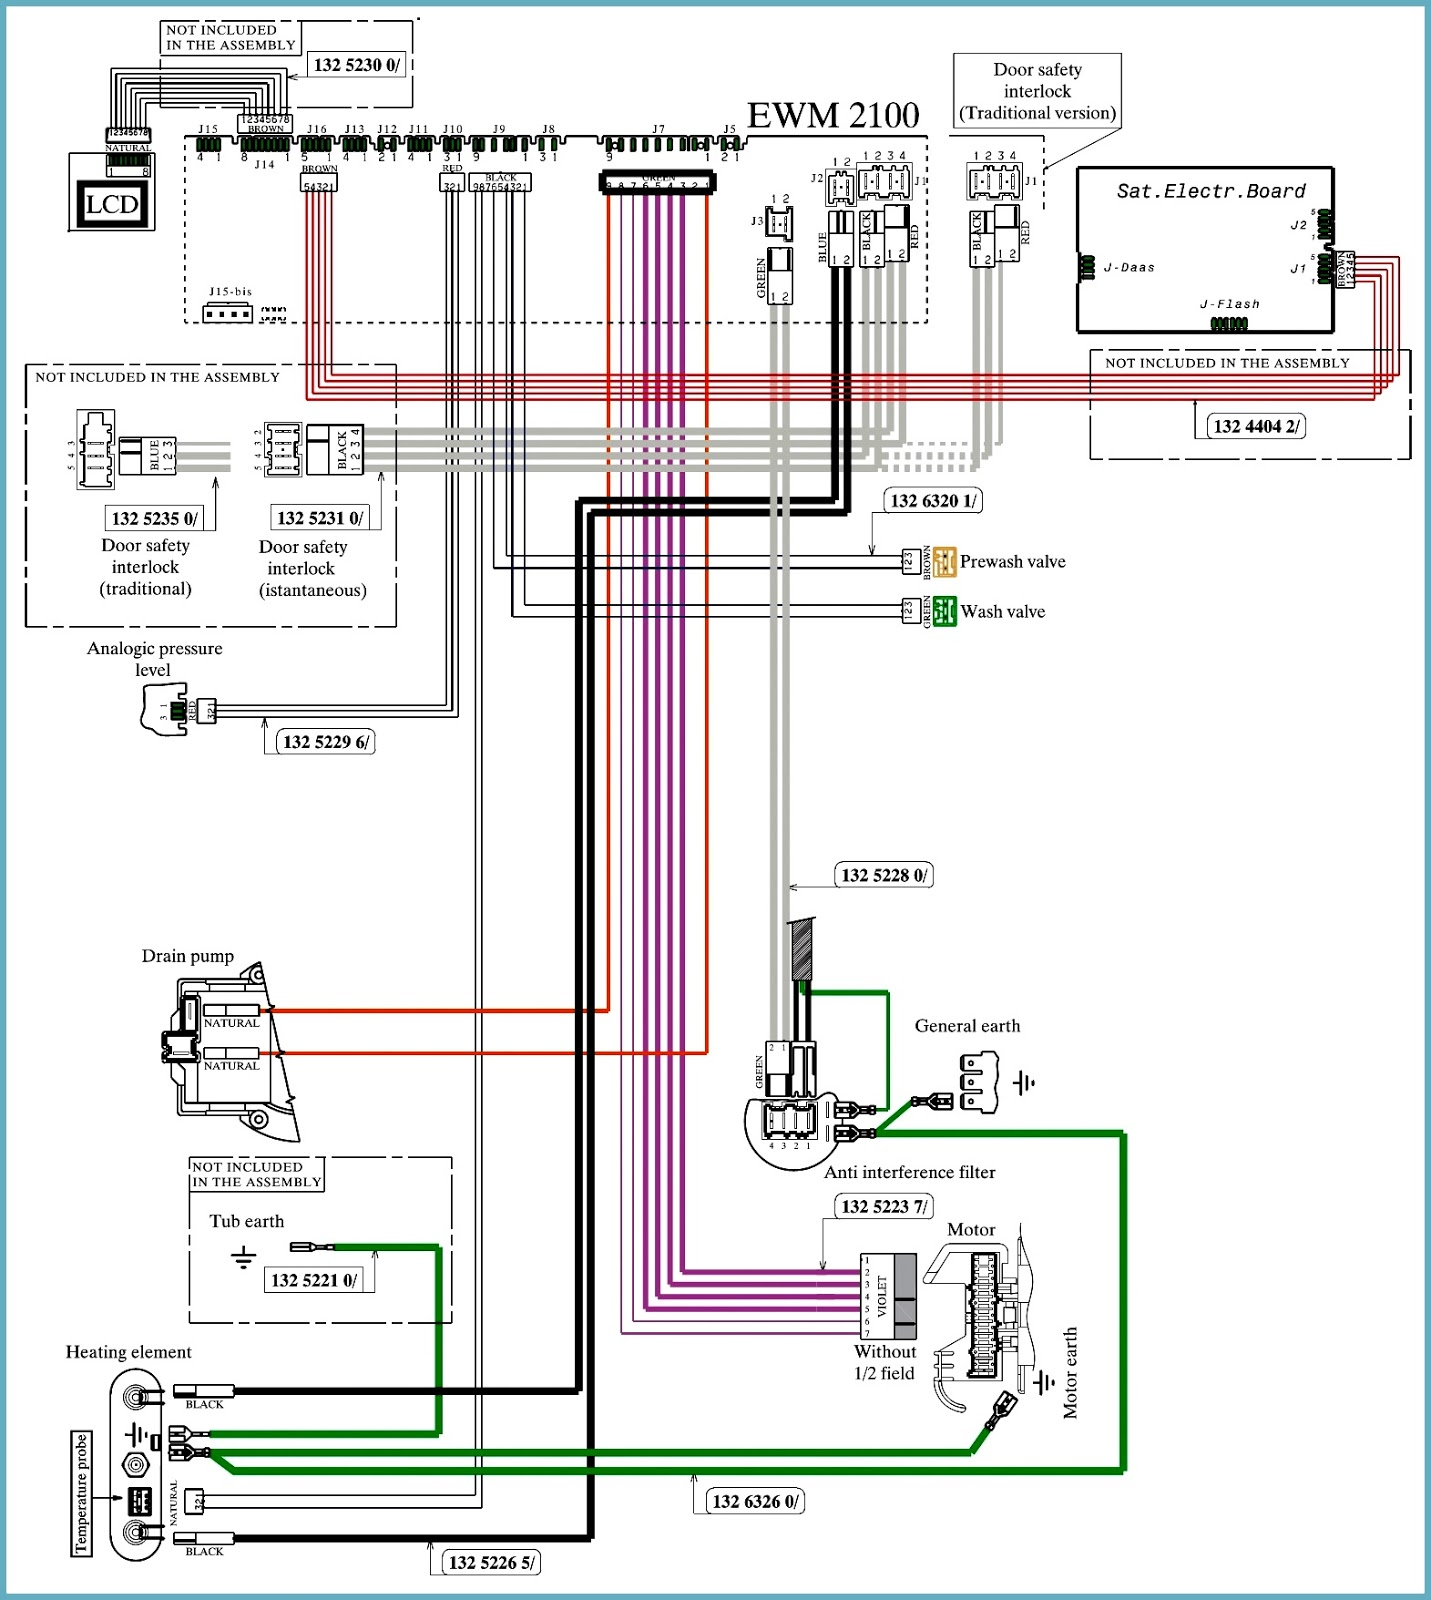 wiring%2Bdiagram electrolux wiring diagram electrolux dishwasher service manual samsung washing machine wiring diagram pdf at fashall.co